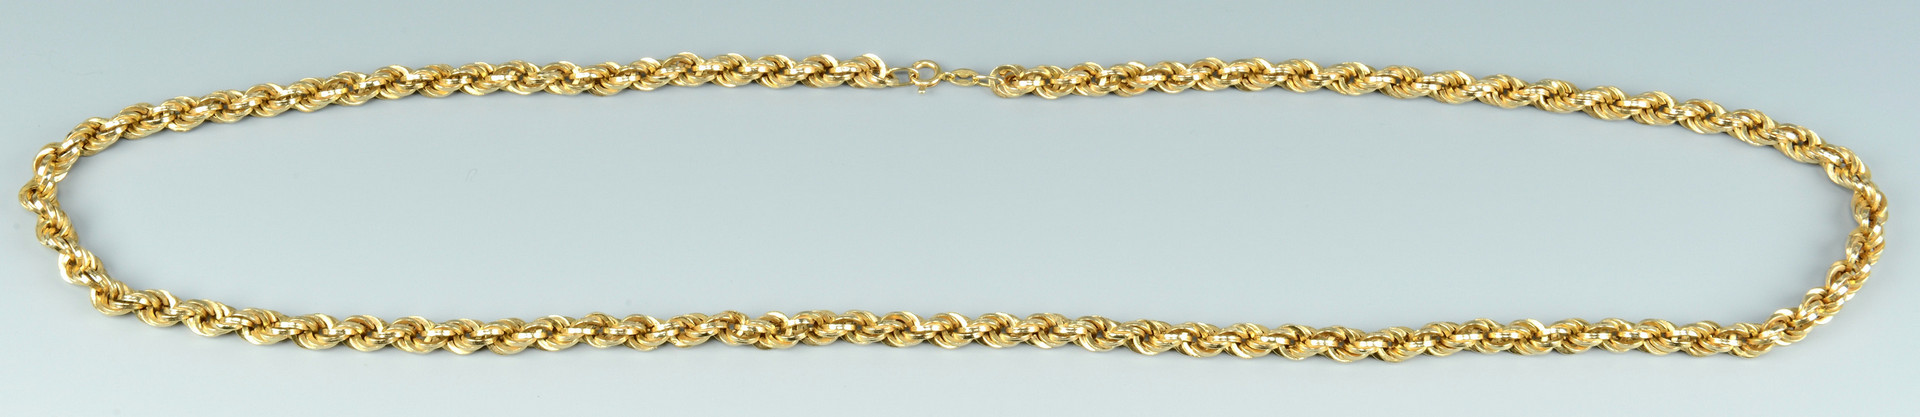 Lot 262: 14k Gold Rope Chain, 38.5 grams